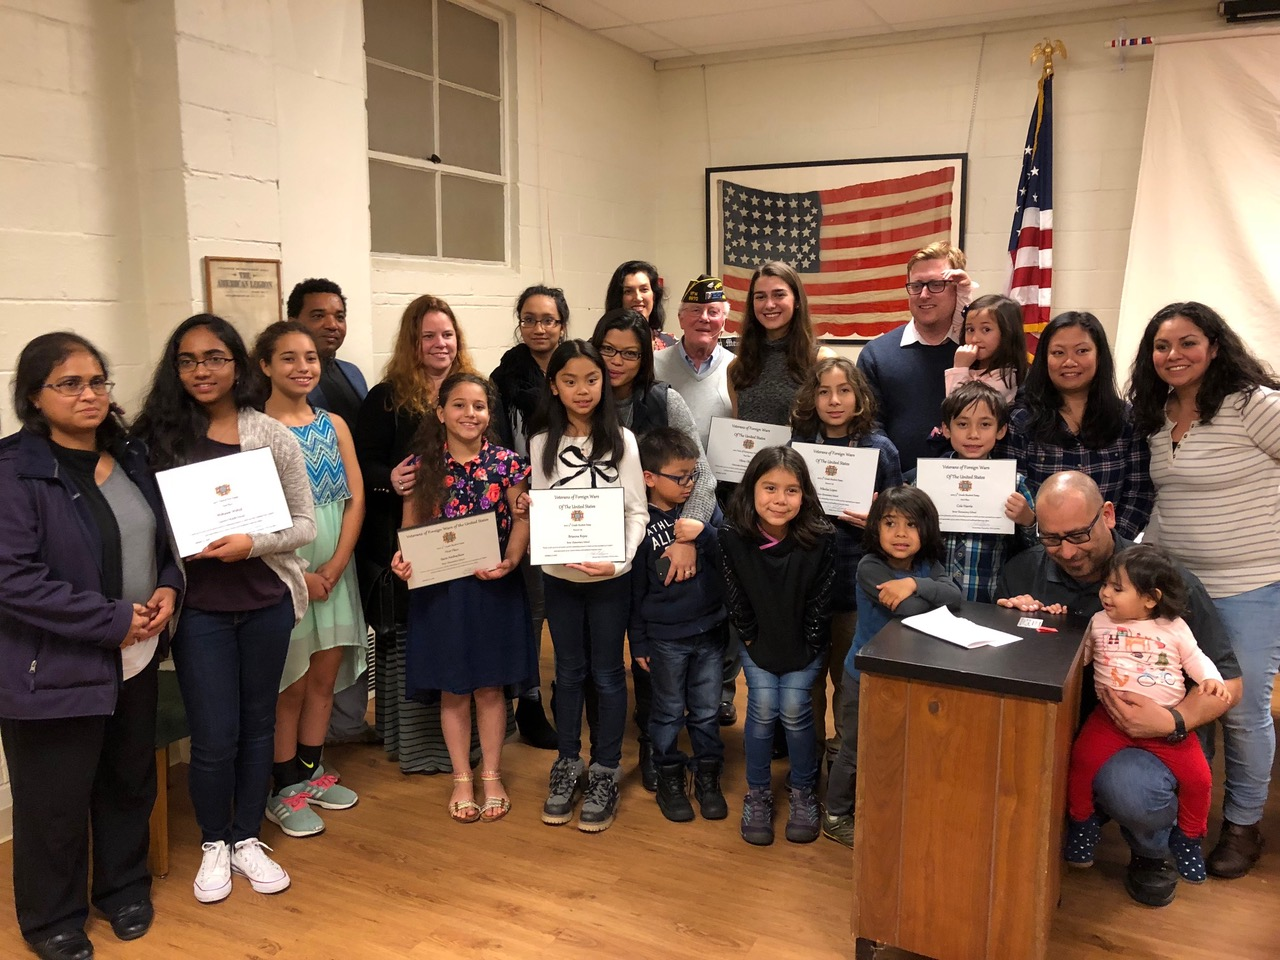 Winners of annual vfw post 8870 essay contests honored my edmonds news